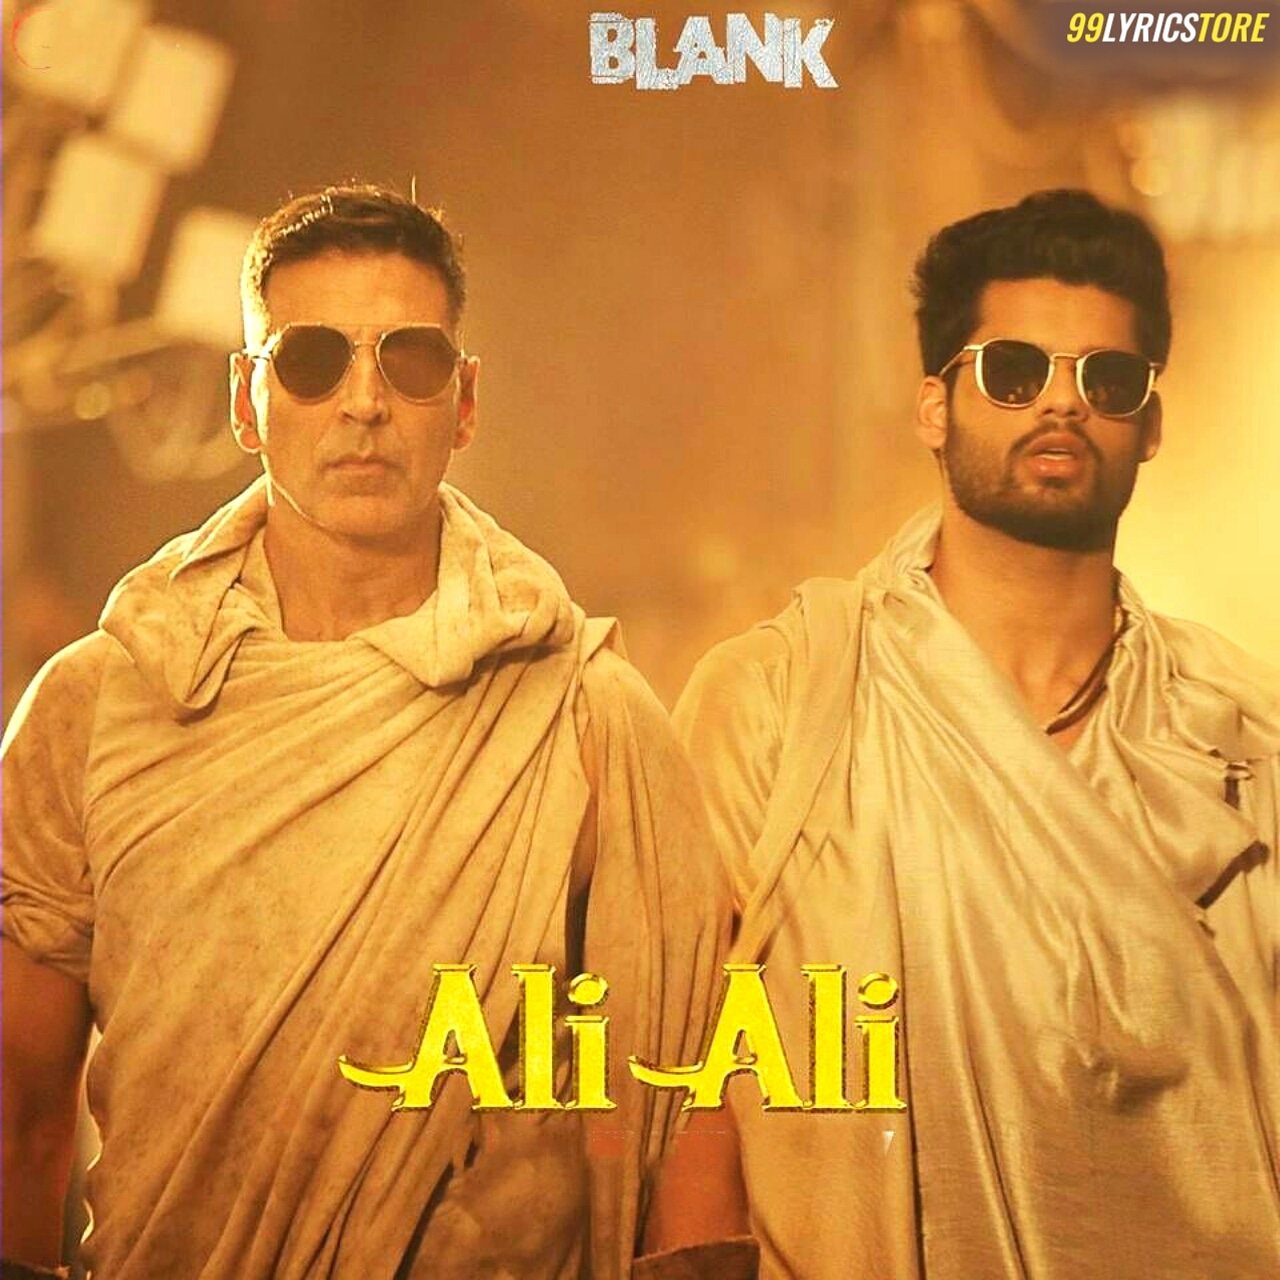 Ali Ali Song Lyrics from movie Blank